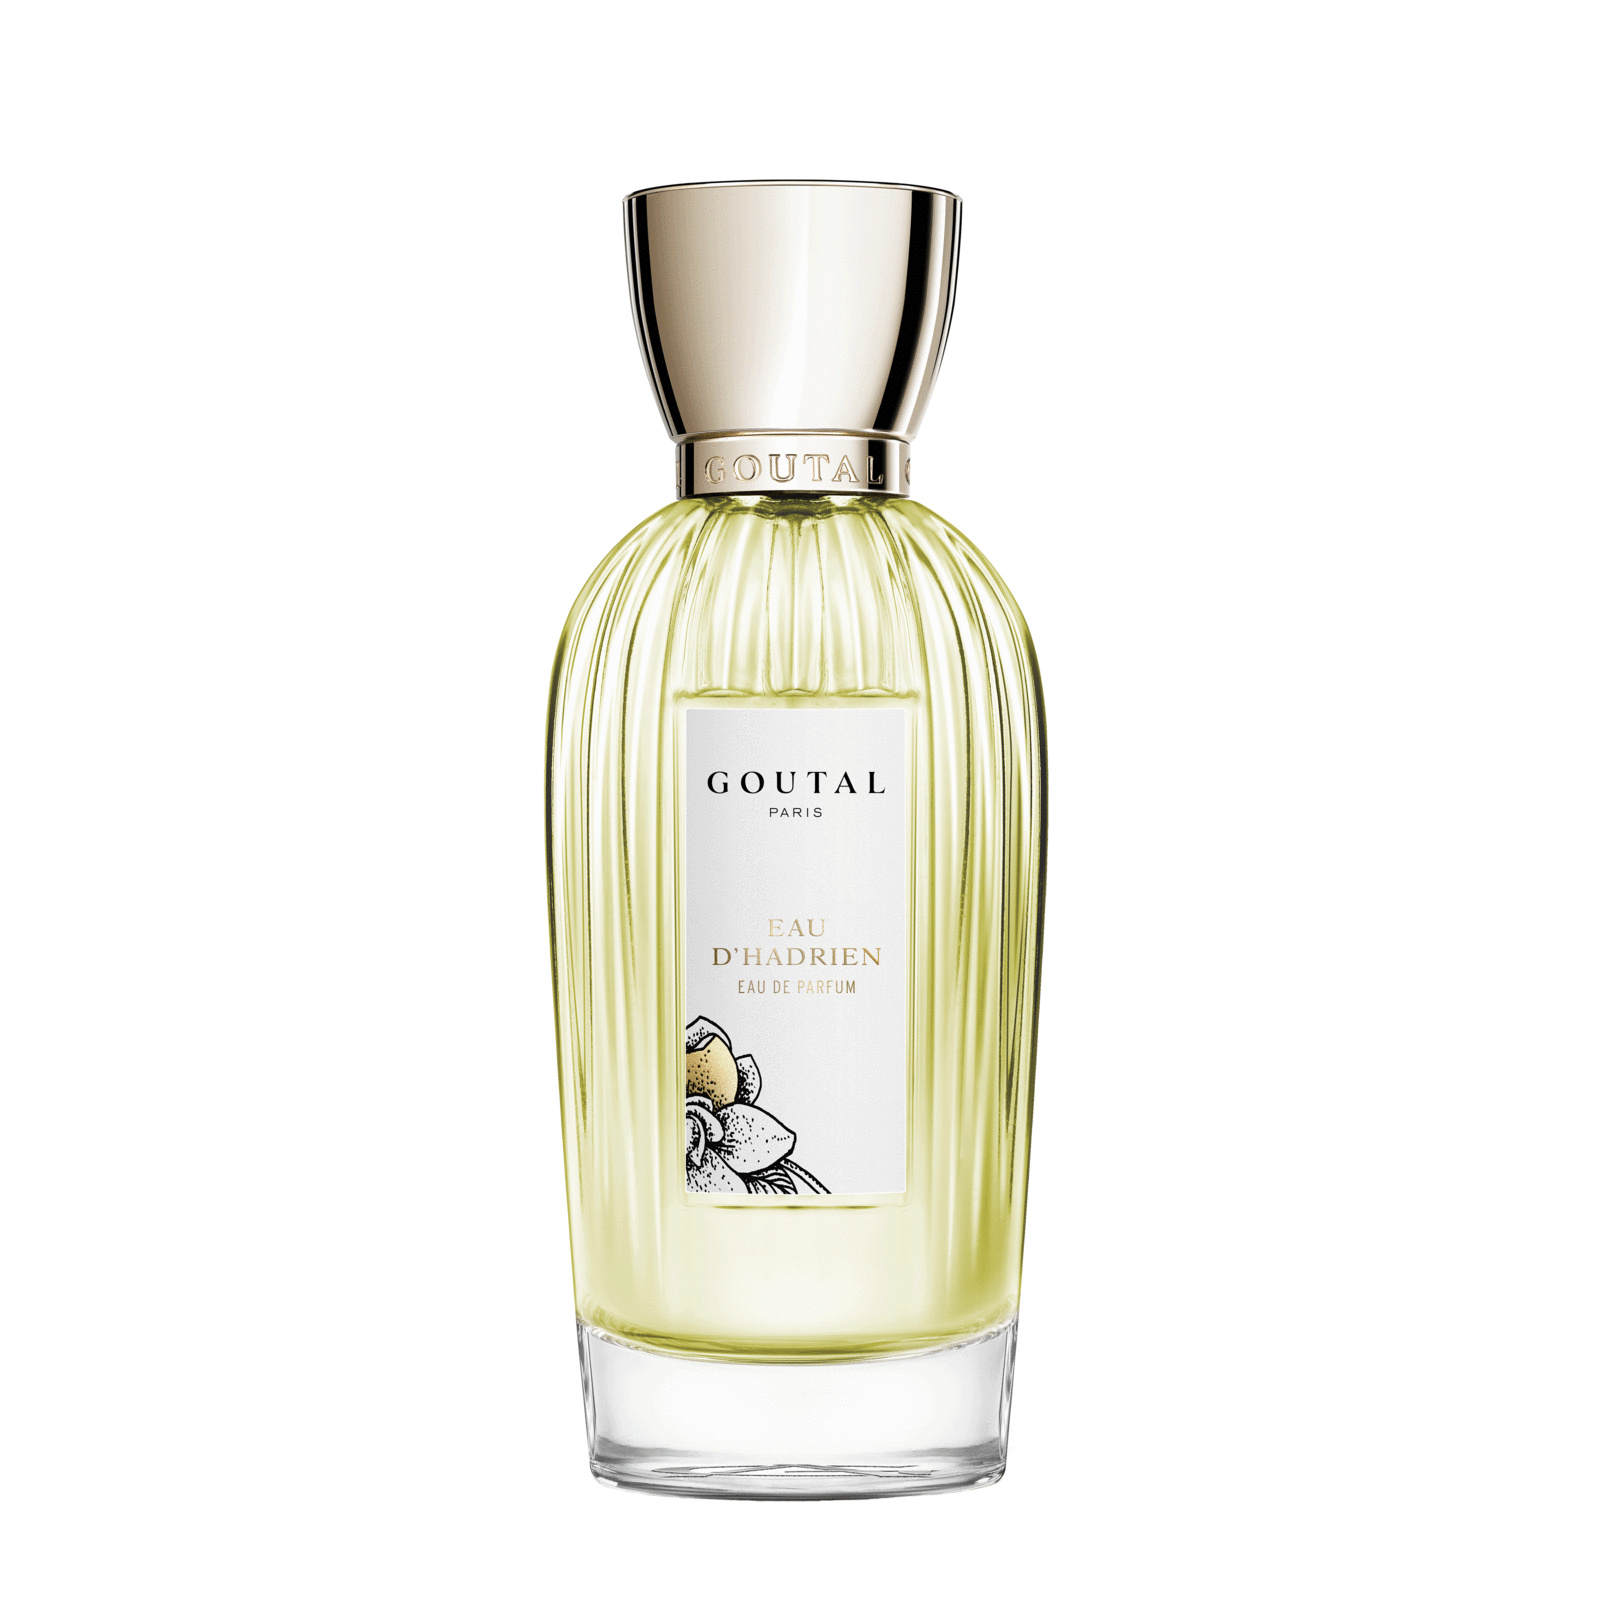 (Foto: Courtesy of Annick Goutal)